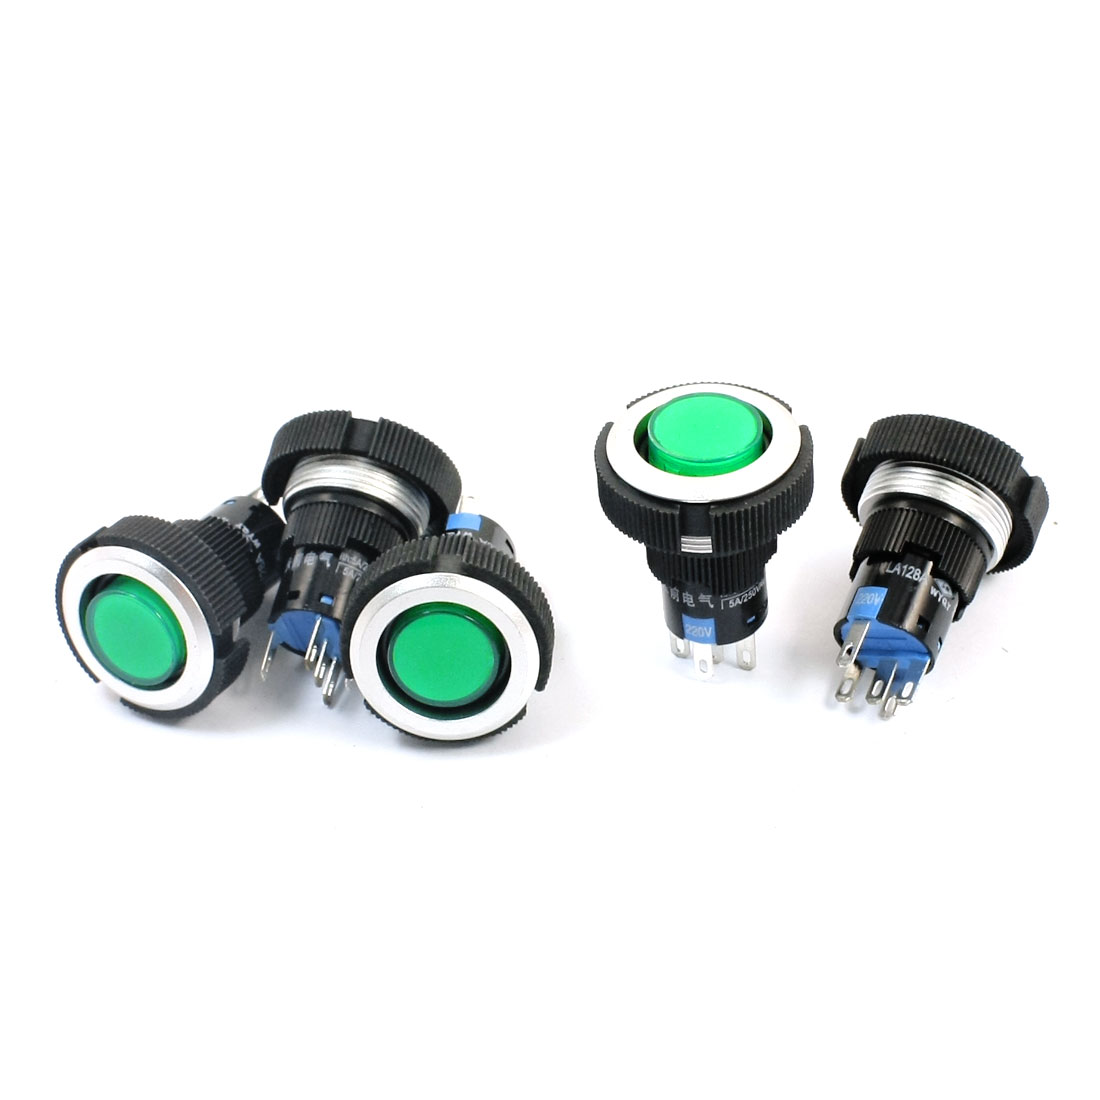 AC220V 22mm Dia Thread Panel Mount Green Pilot Lamp SPDT 1NO 1NC Latching Plastic Push Button Switch 5Pcs